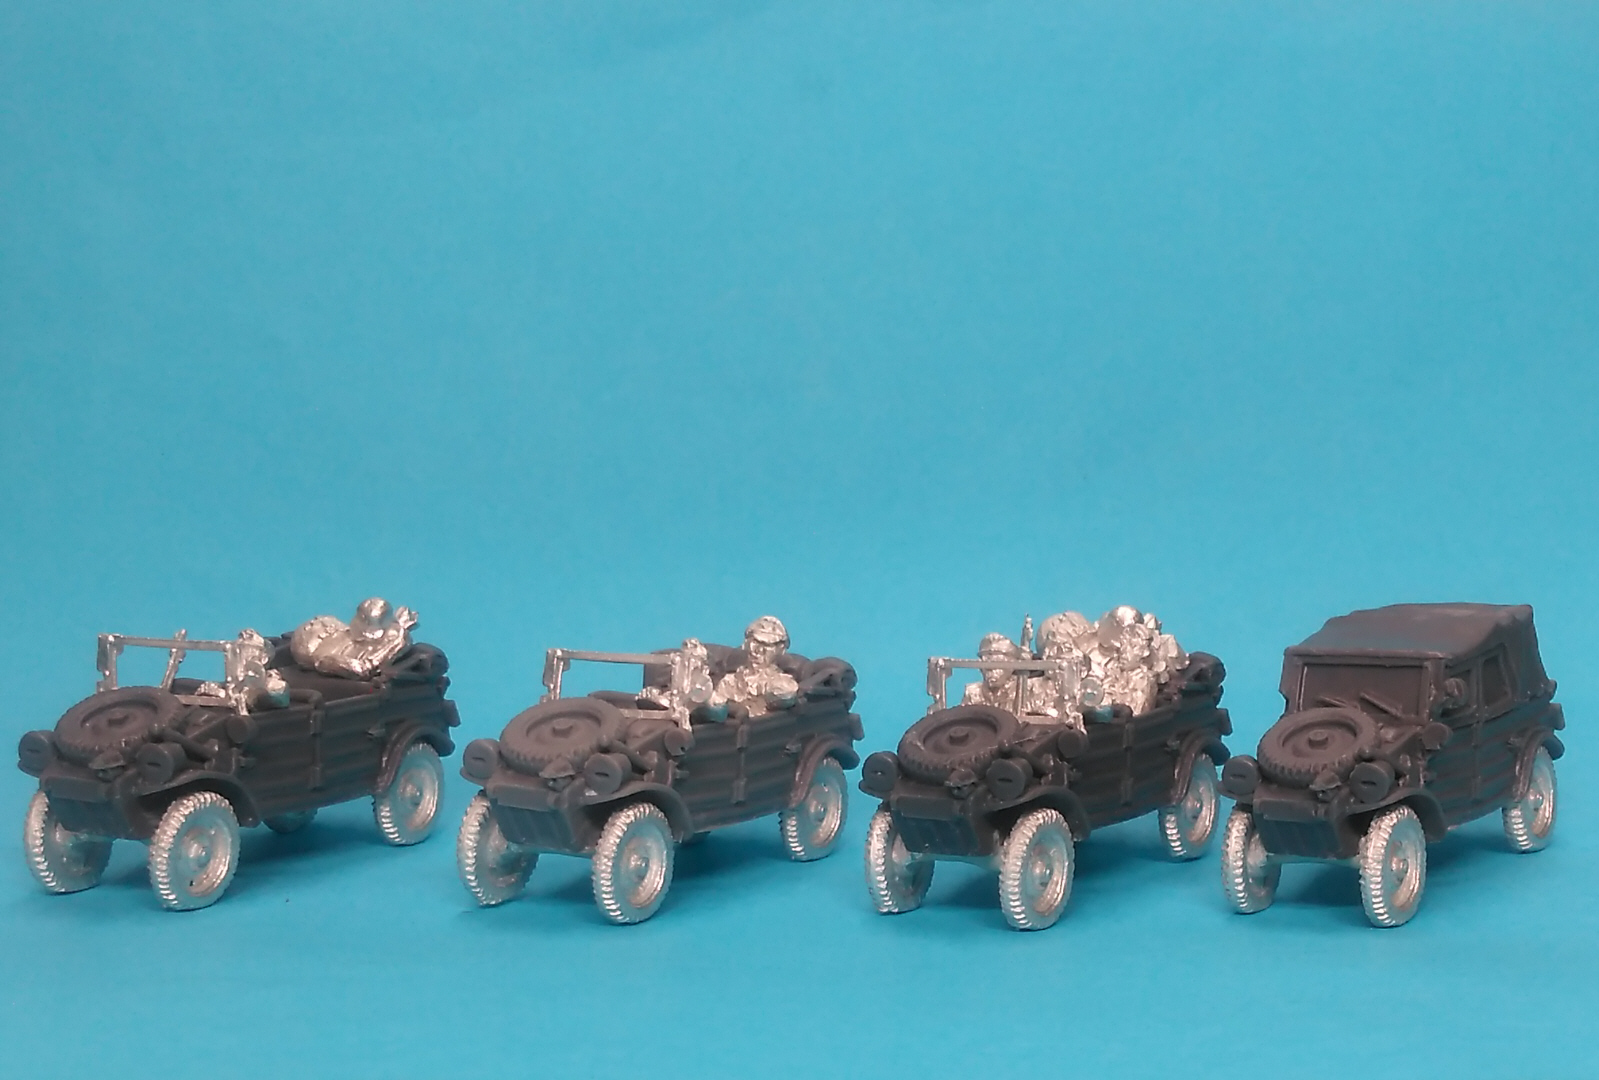 Kubelwagen 4 vehicles